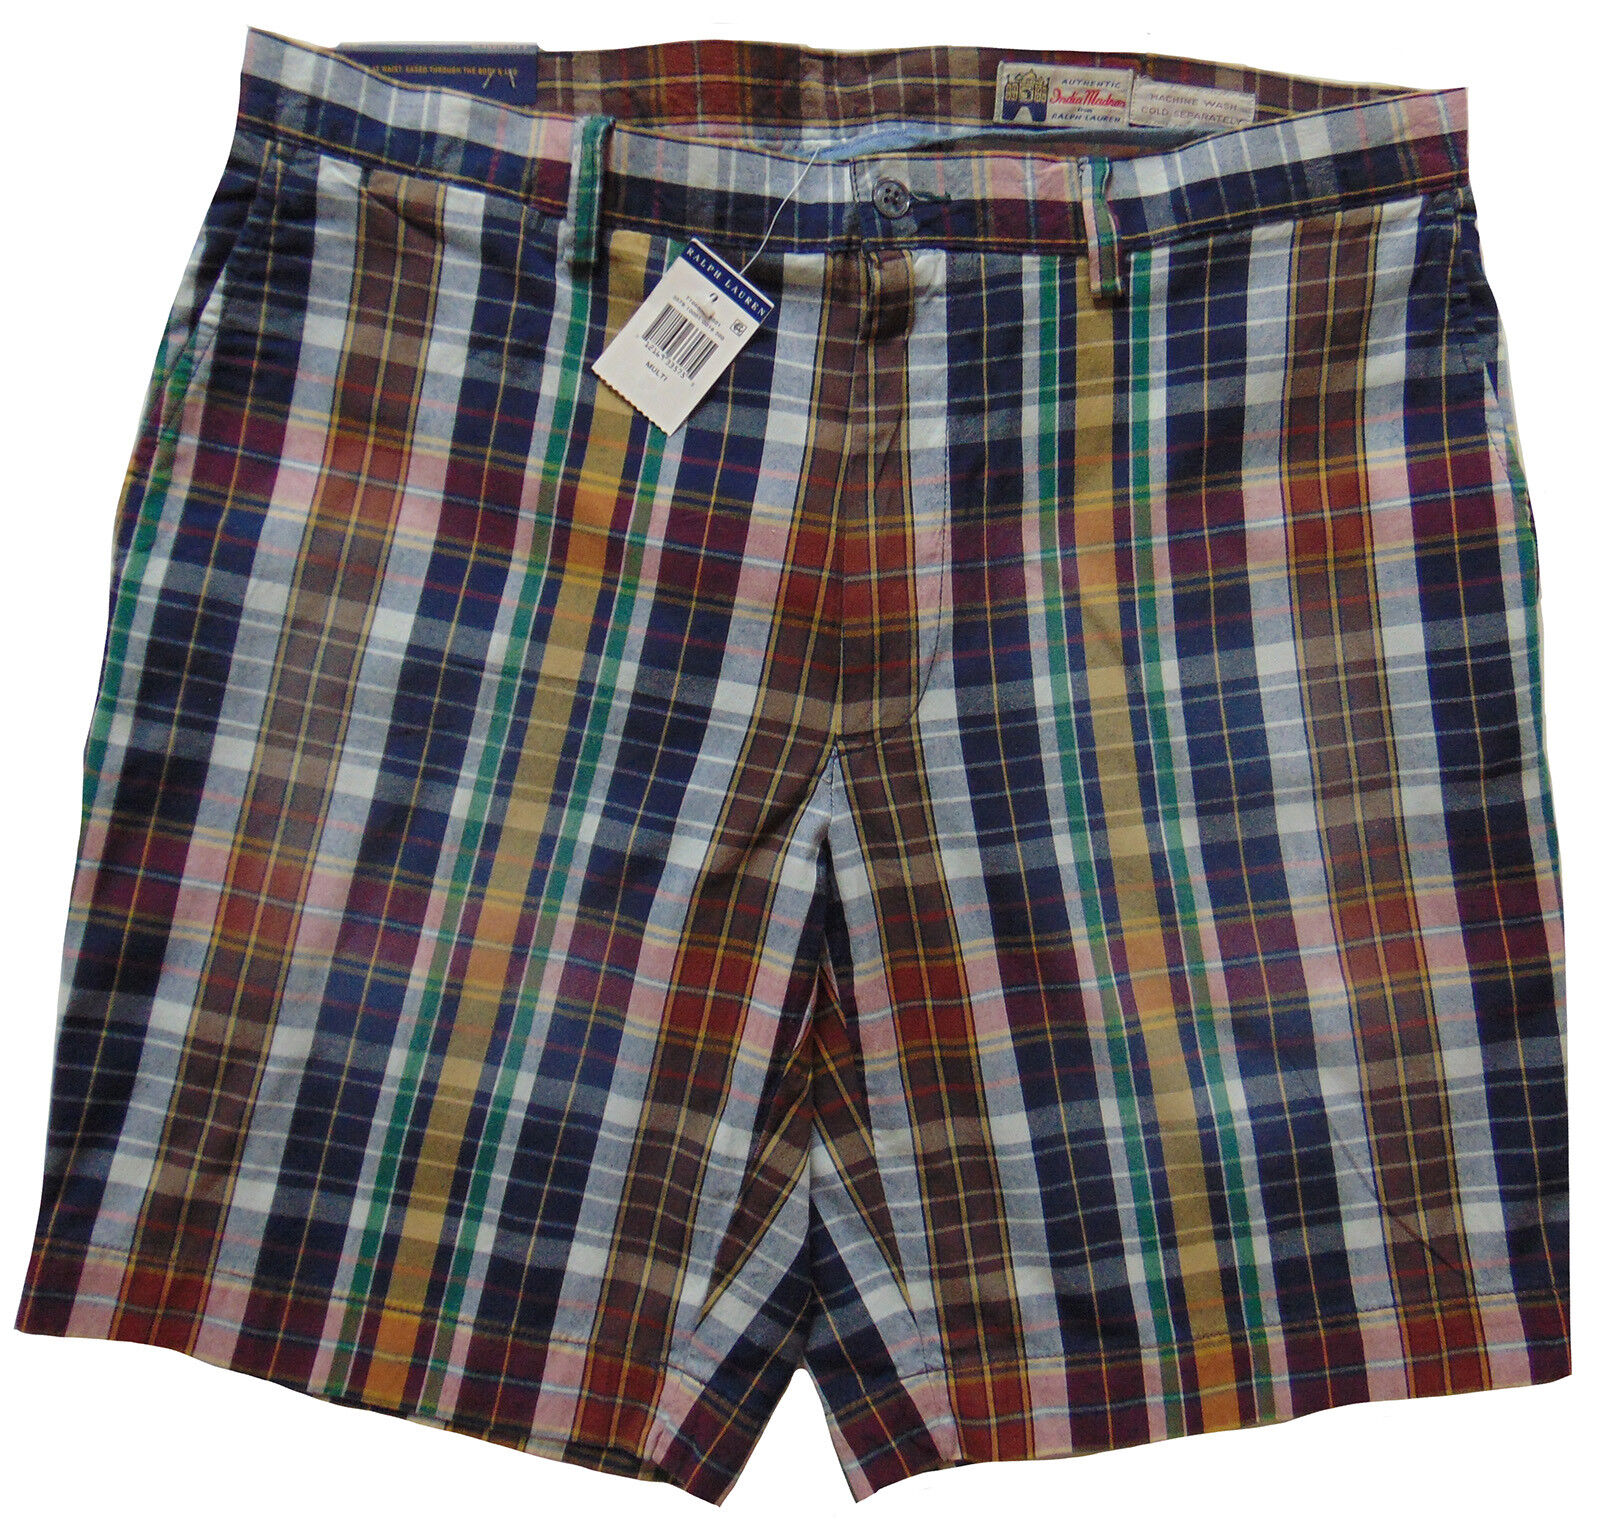 Men's POLO RALPH LAUREN colors Madras Plaid Shorts 38 NWT NEW Classic Fit 9  WoW